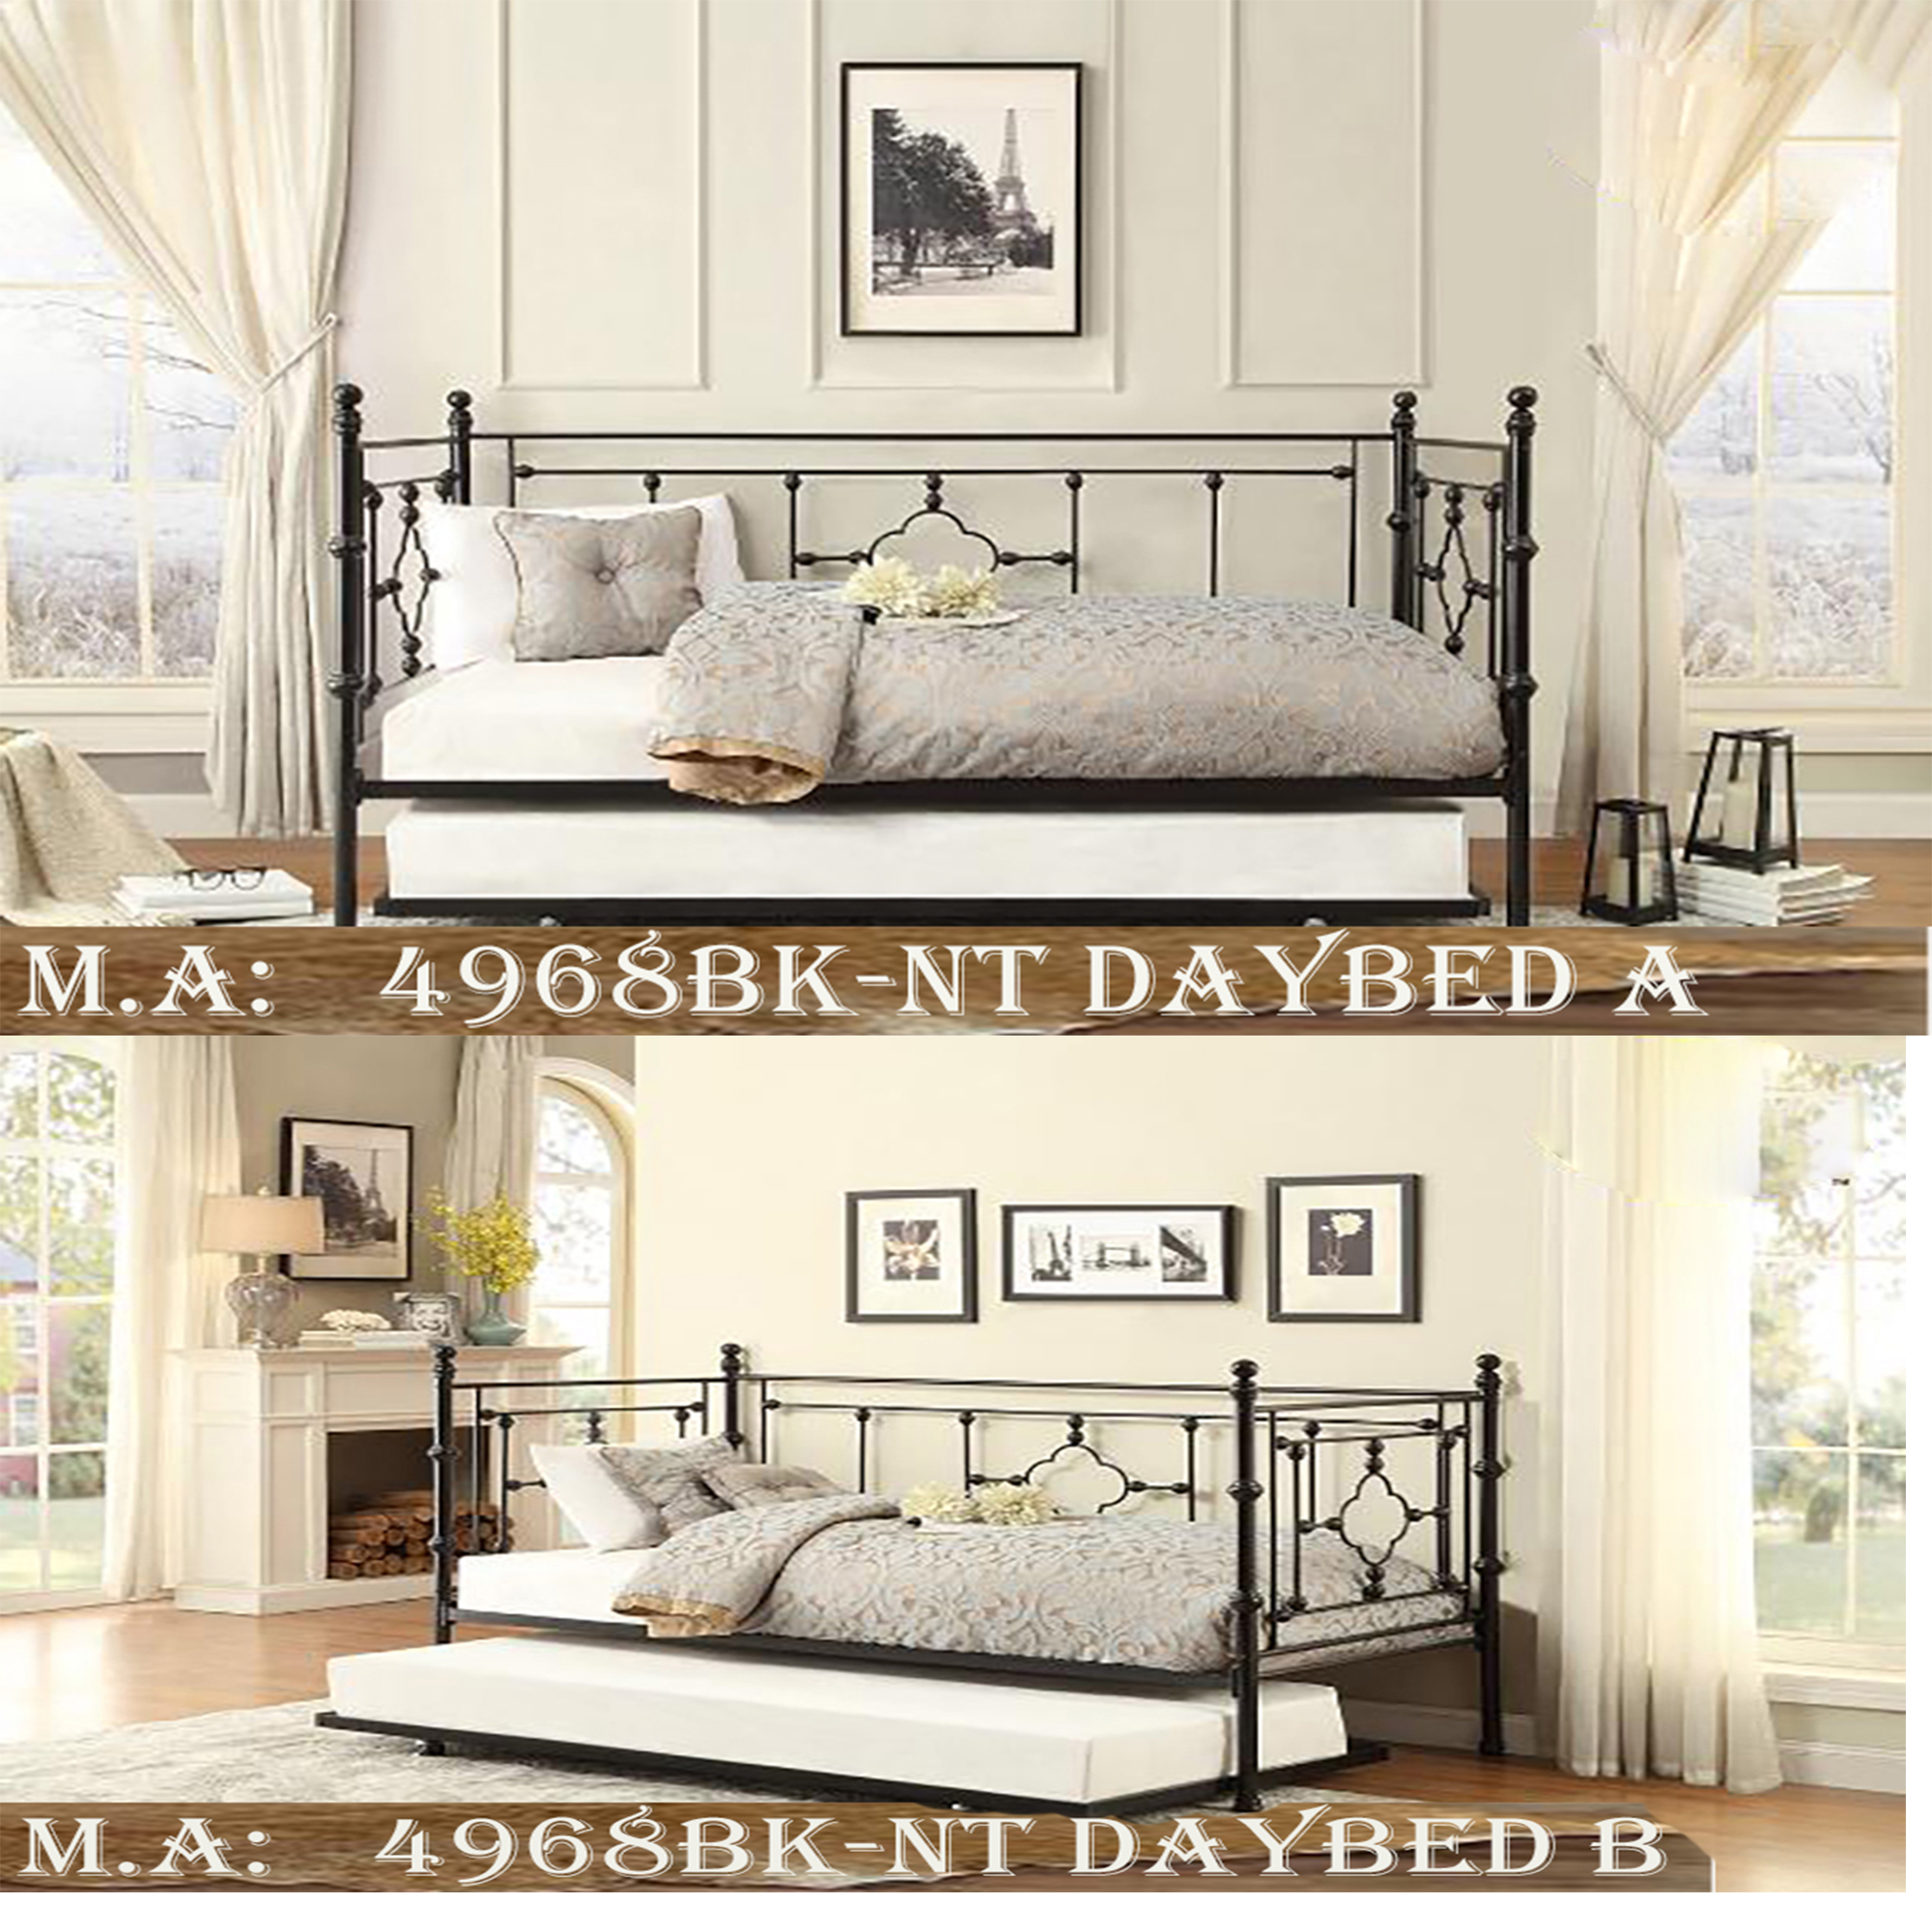 1-4968BK-NT daybed a